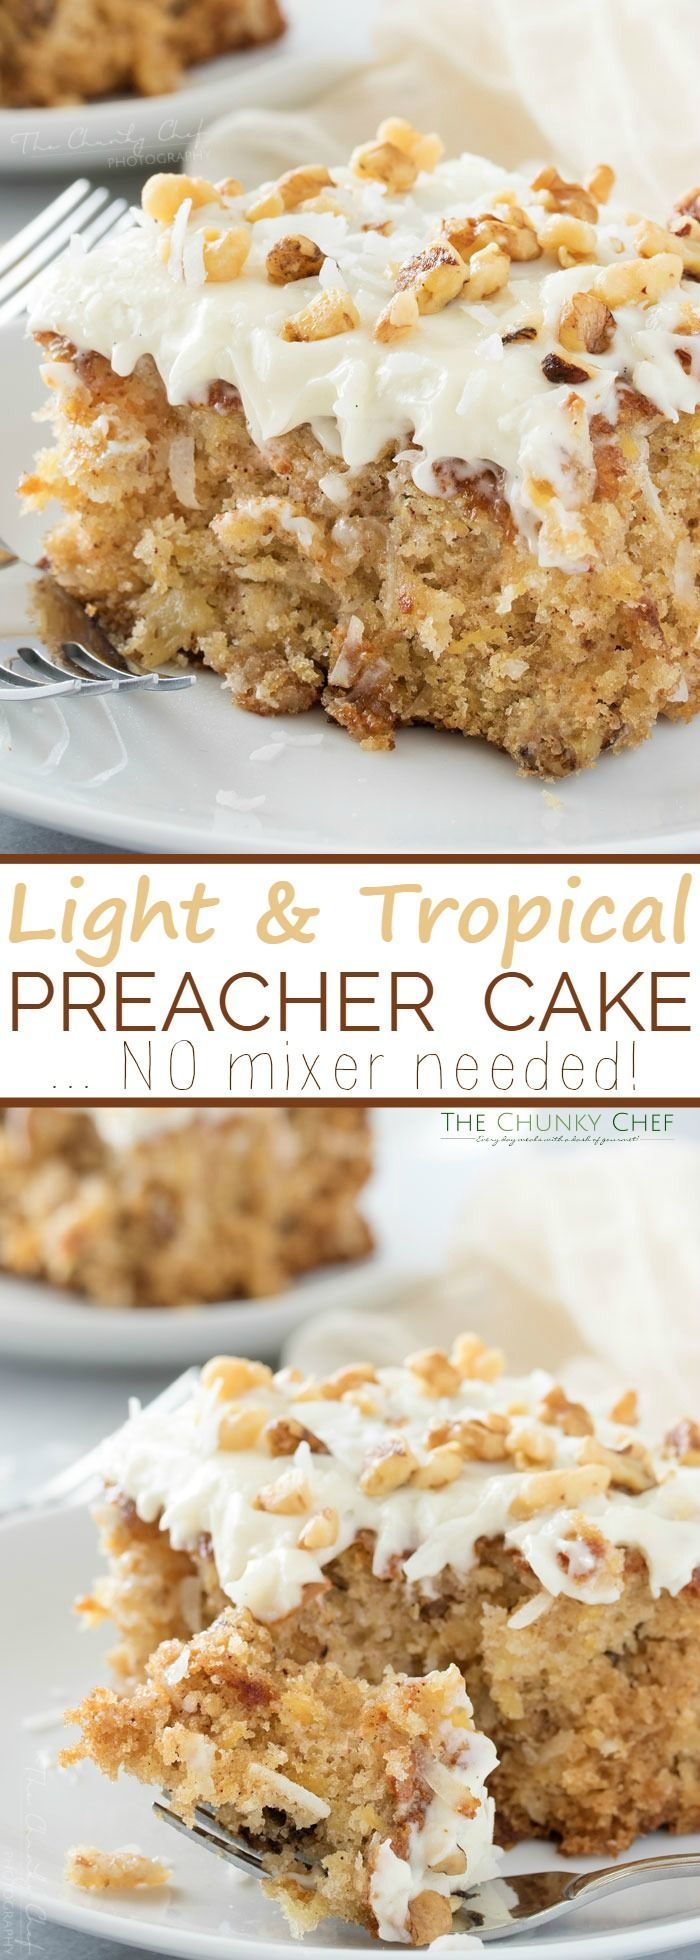 Preacher Cake   This light, moist, and tropical preacher cake is the easiest dessert ever! You mix it together with a wooden spoon, in one bowl... no mixer needed!   http://thechunkychef.com